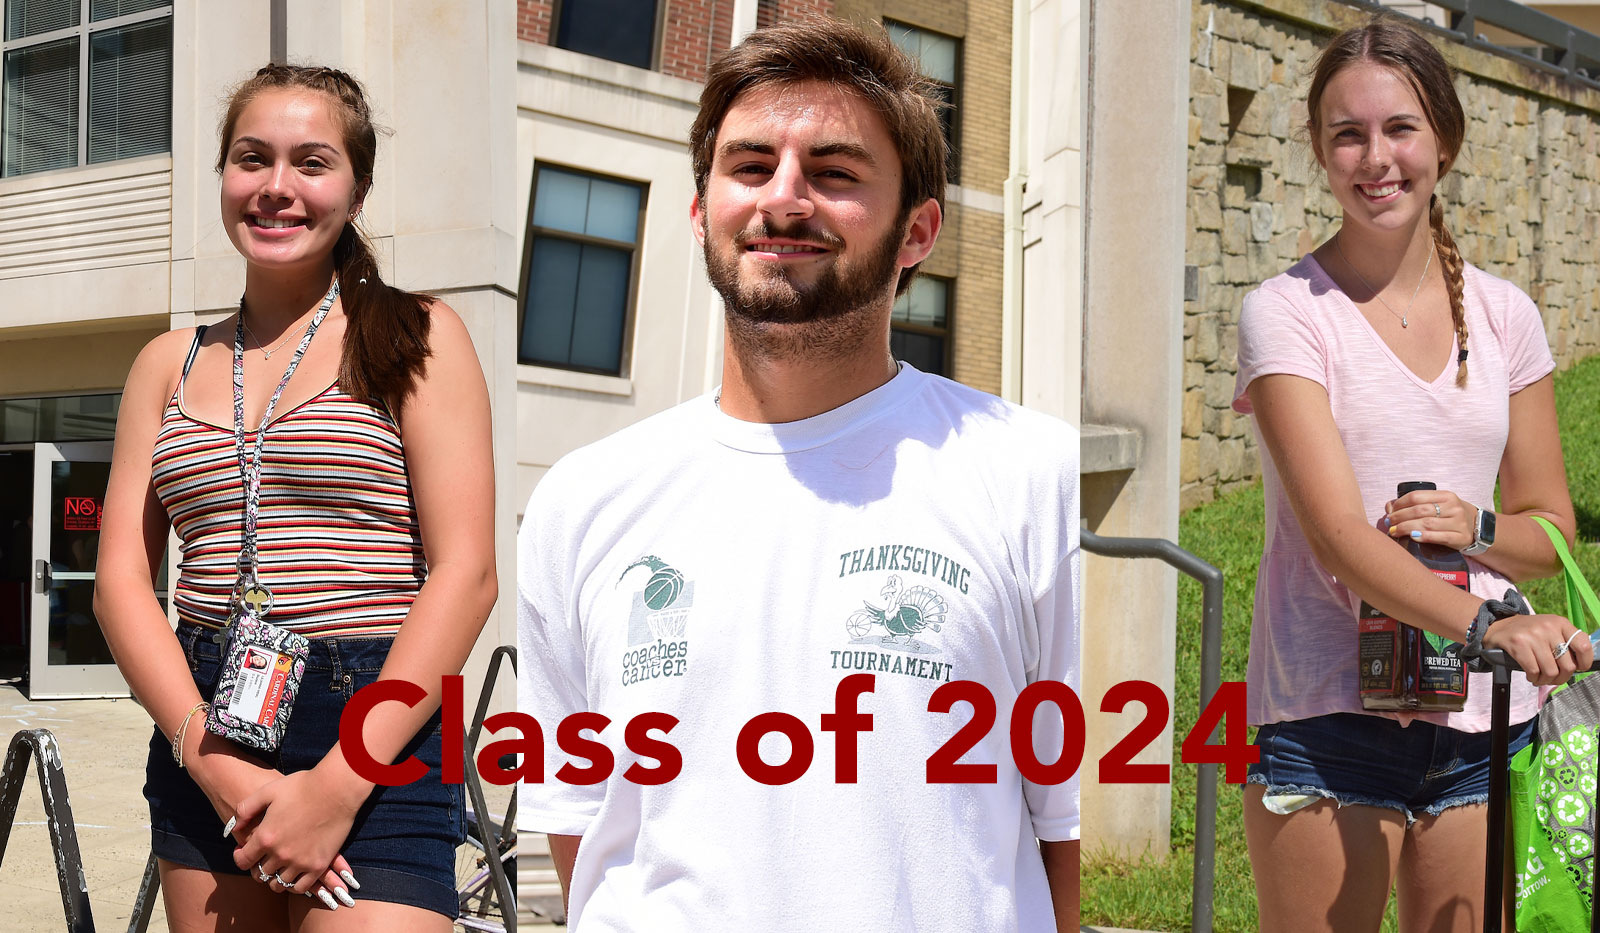 Three student profile photos from the class of 2024.